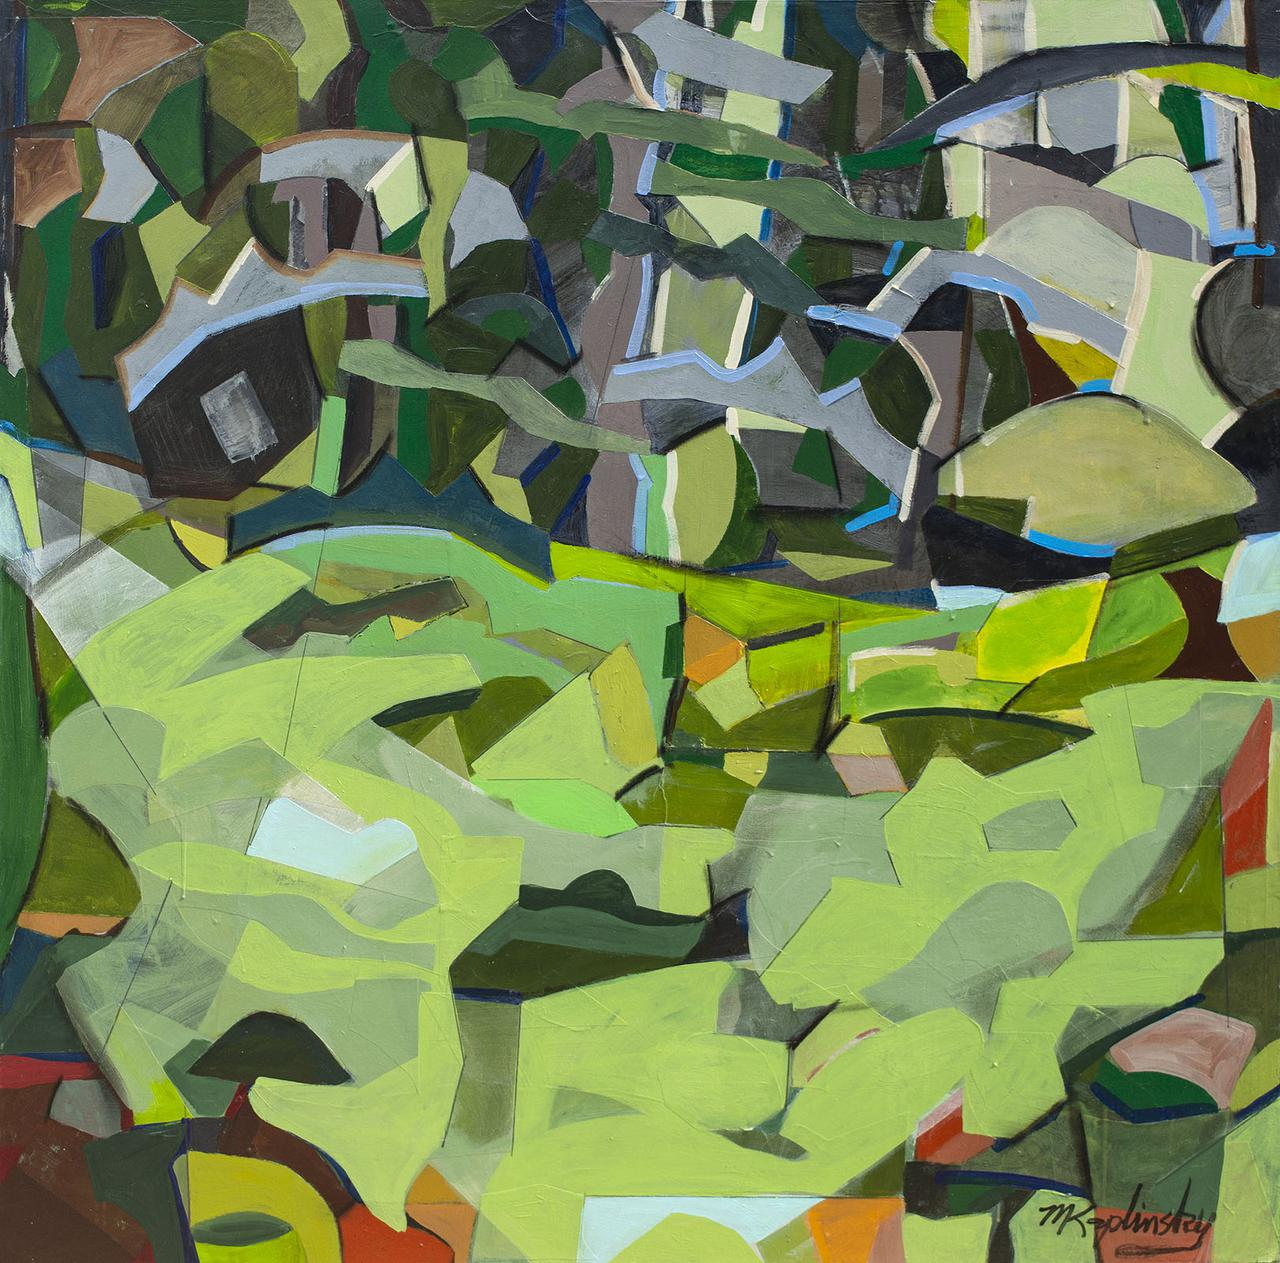 wooded lawn _48x48  _acrylic and paper on canvas _by matt kaplinsky _web.jpg